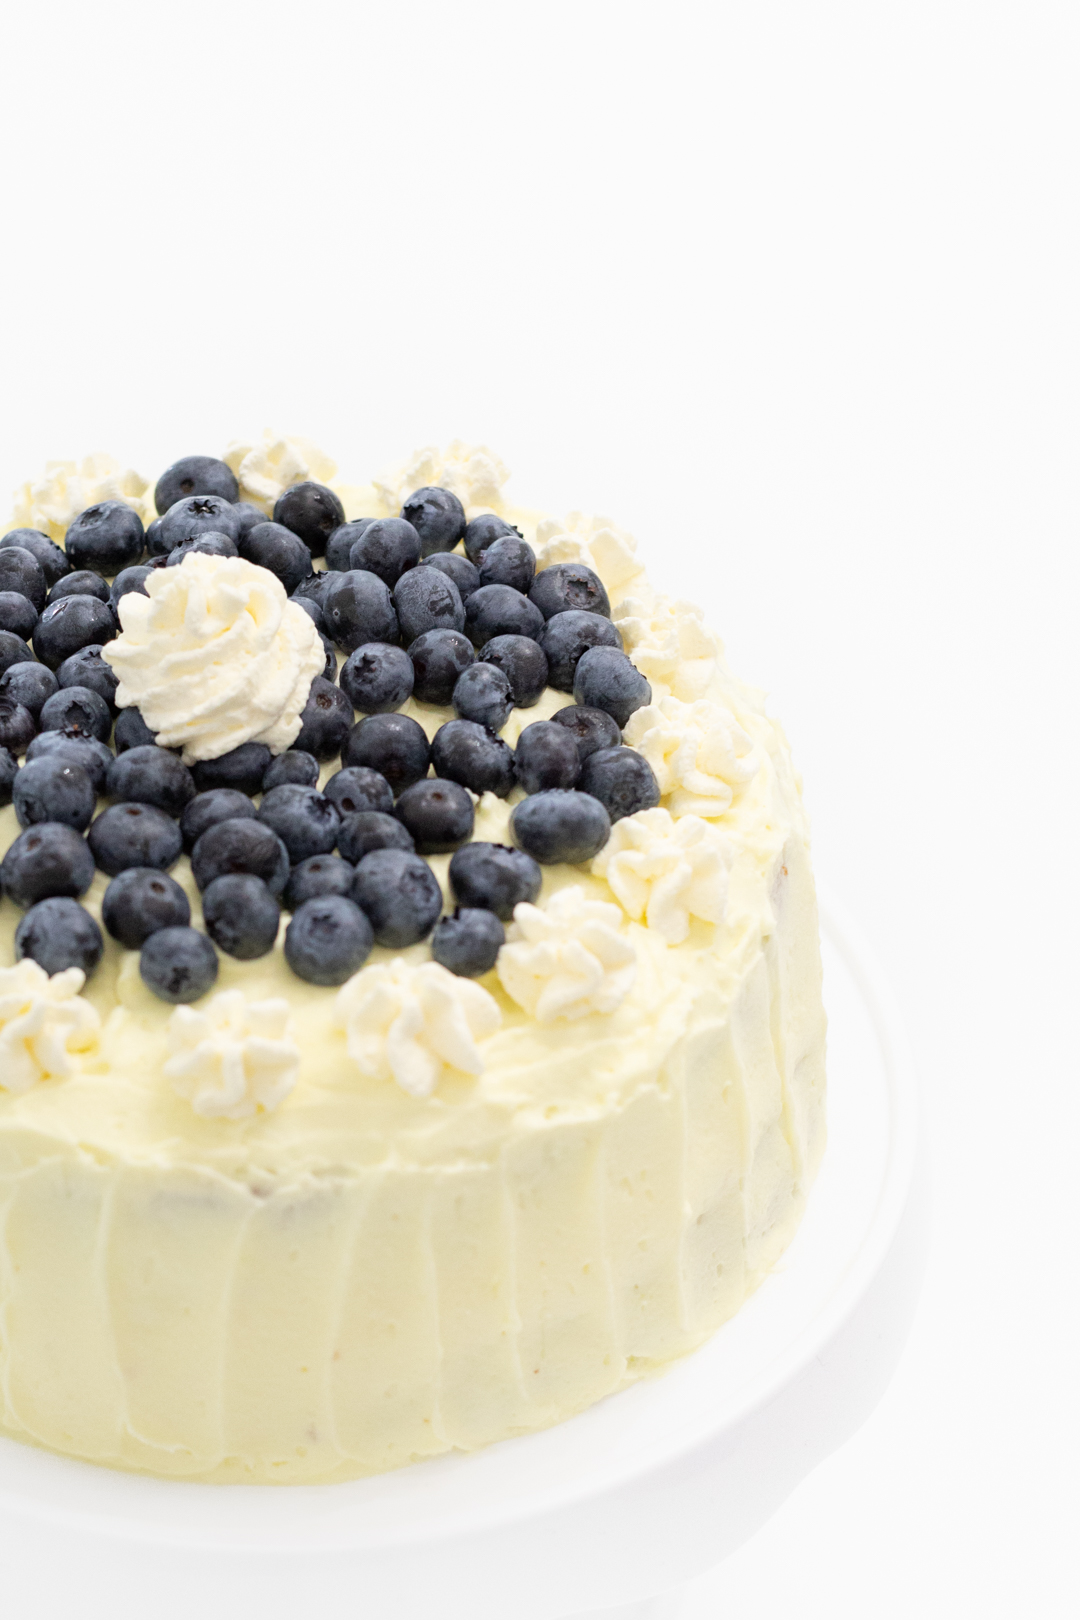 Lemon frosted cake with fresh blueberries on top.